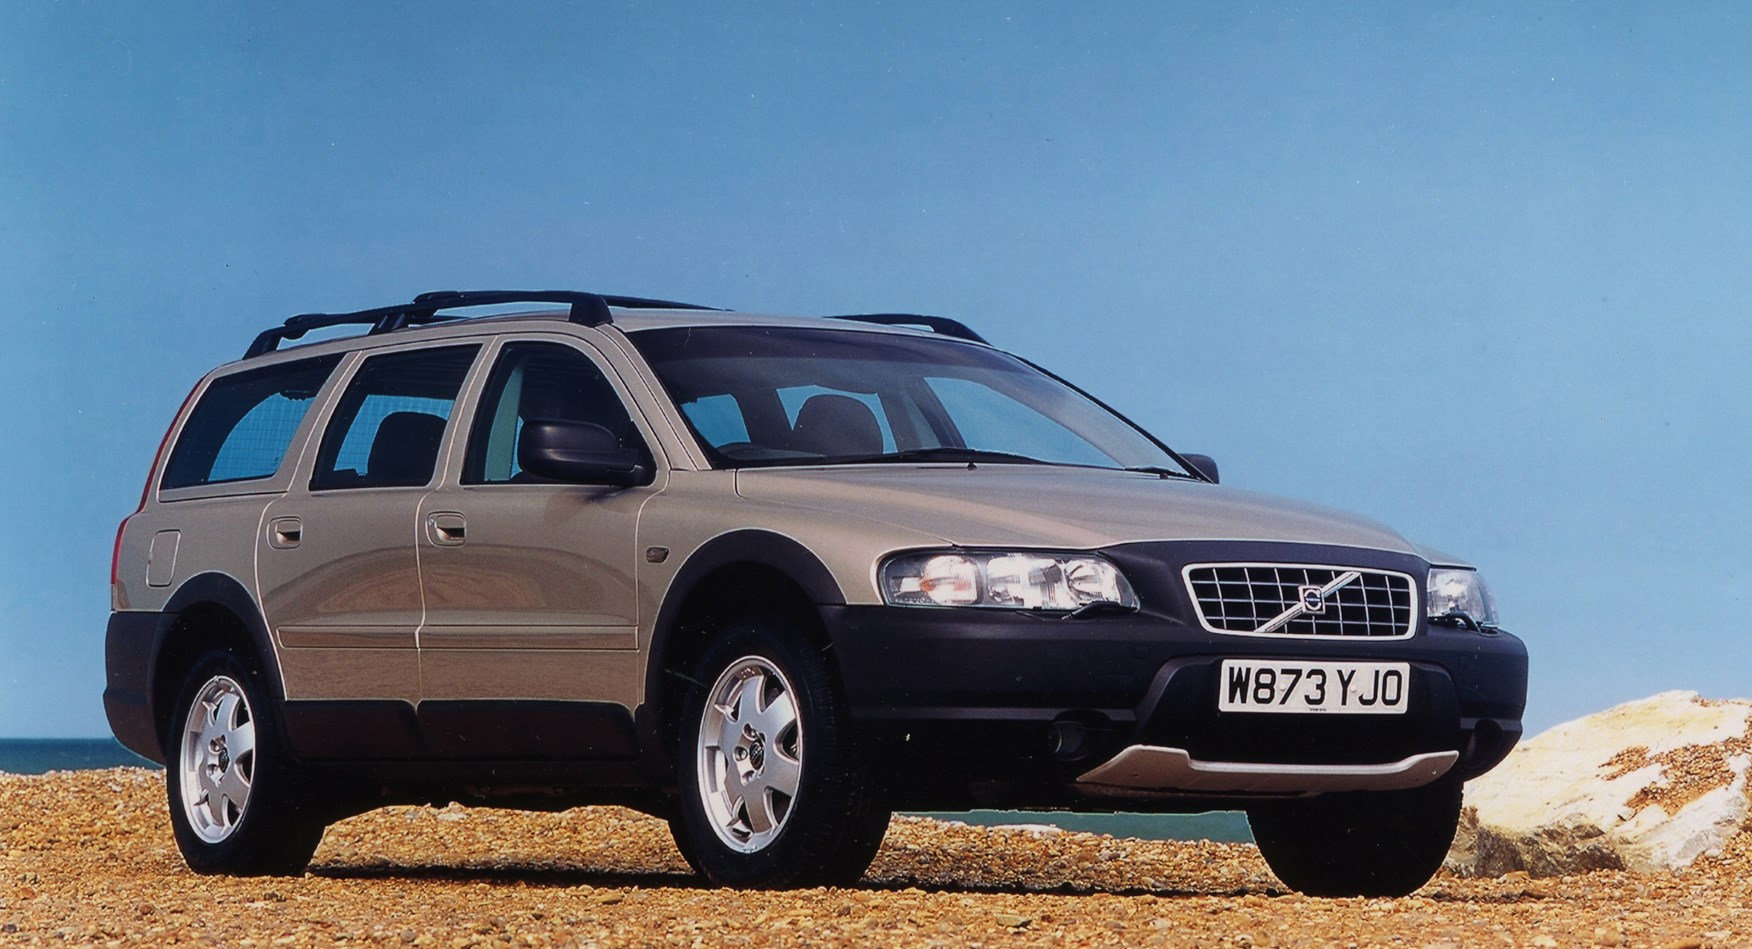 Volvo XC70 Estate (2000 - 2007) Photos | Parkers